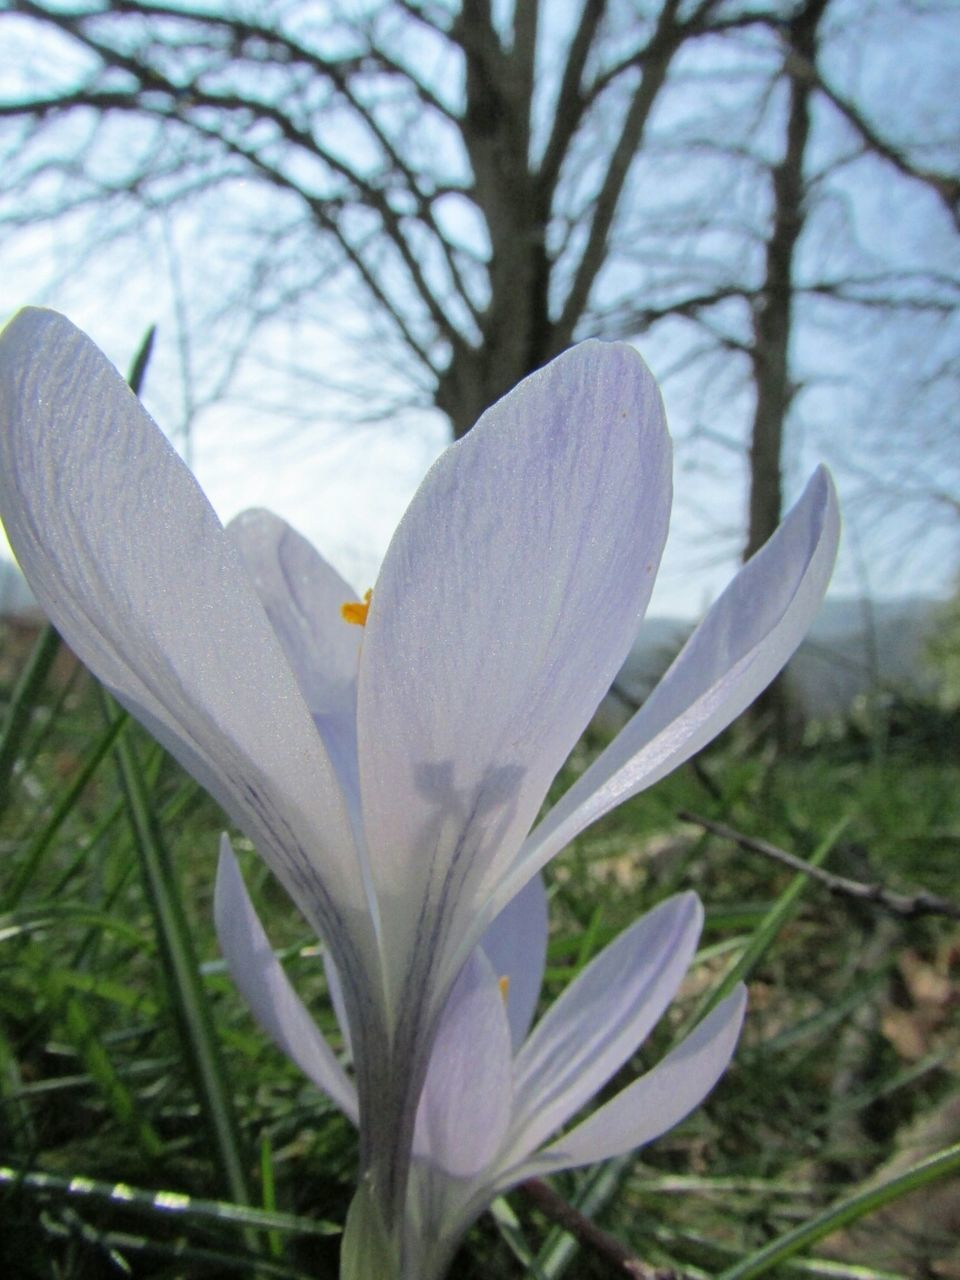 flower, petal, growth, nature, beauty in nature, white color, freshness, fragility, day, outdoors, plant, no people, close-up, flower head, blooming, tree, crocus